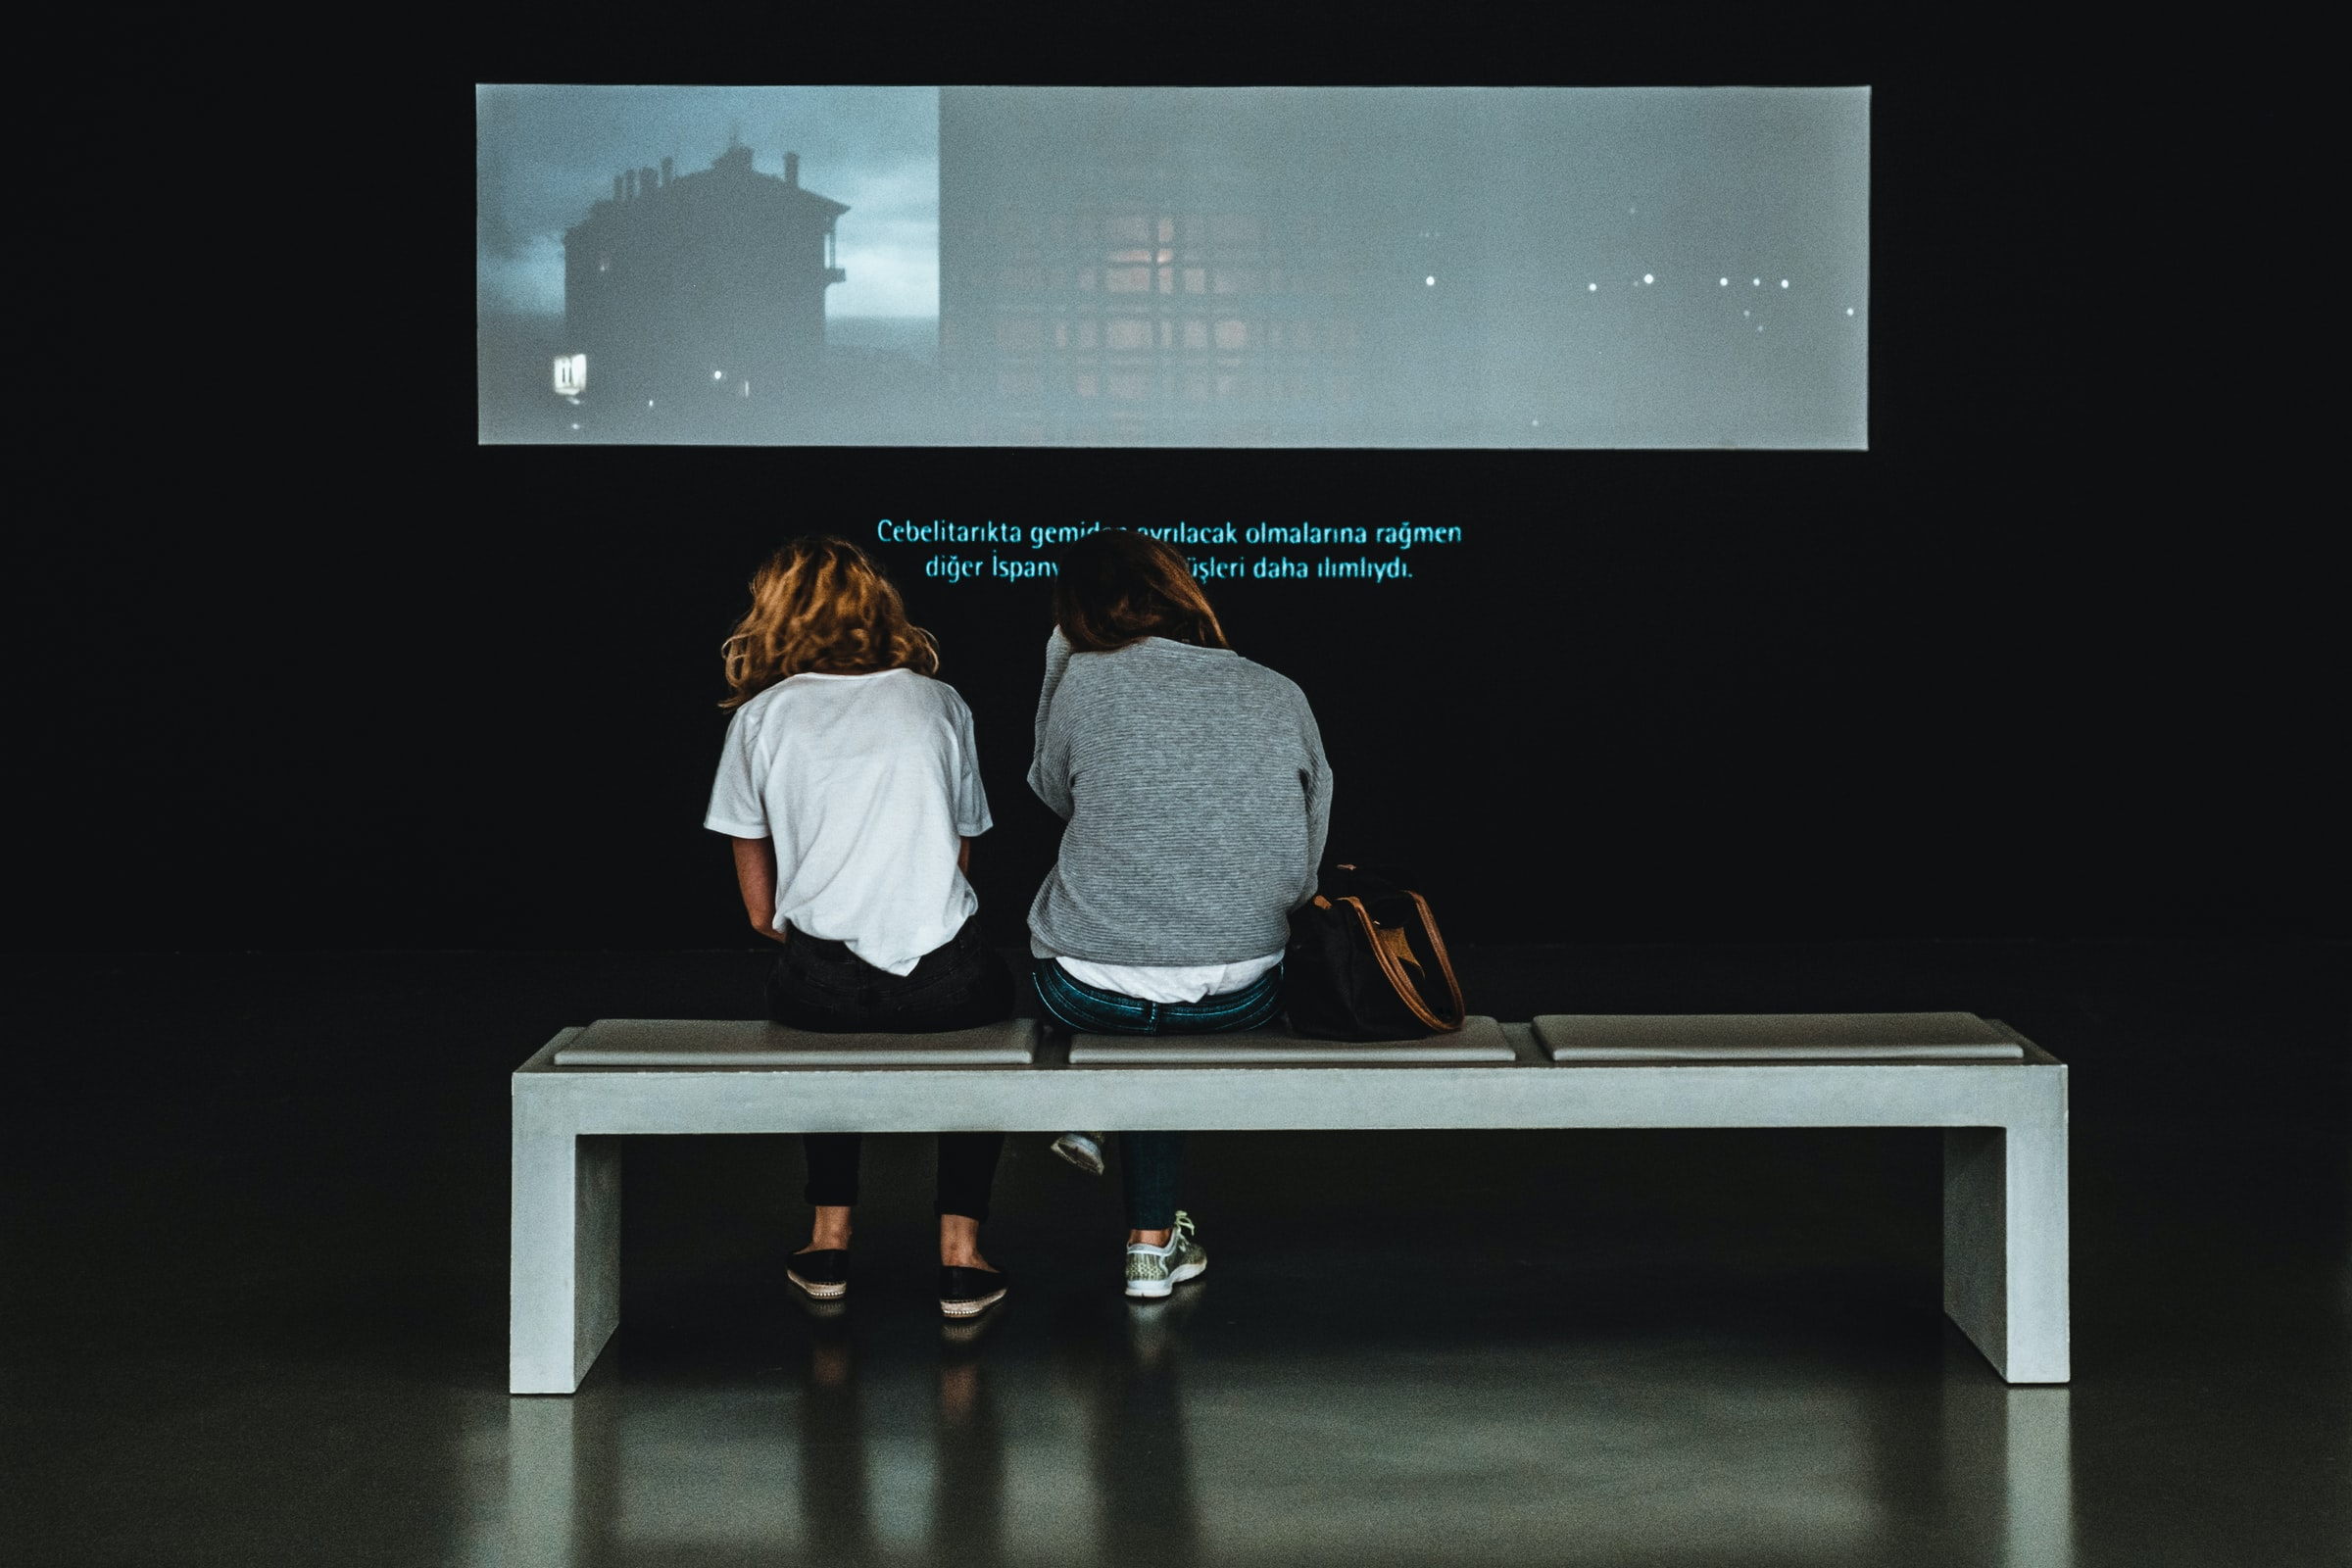 two women sitting in front of a screen with subtitles displayed